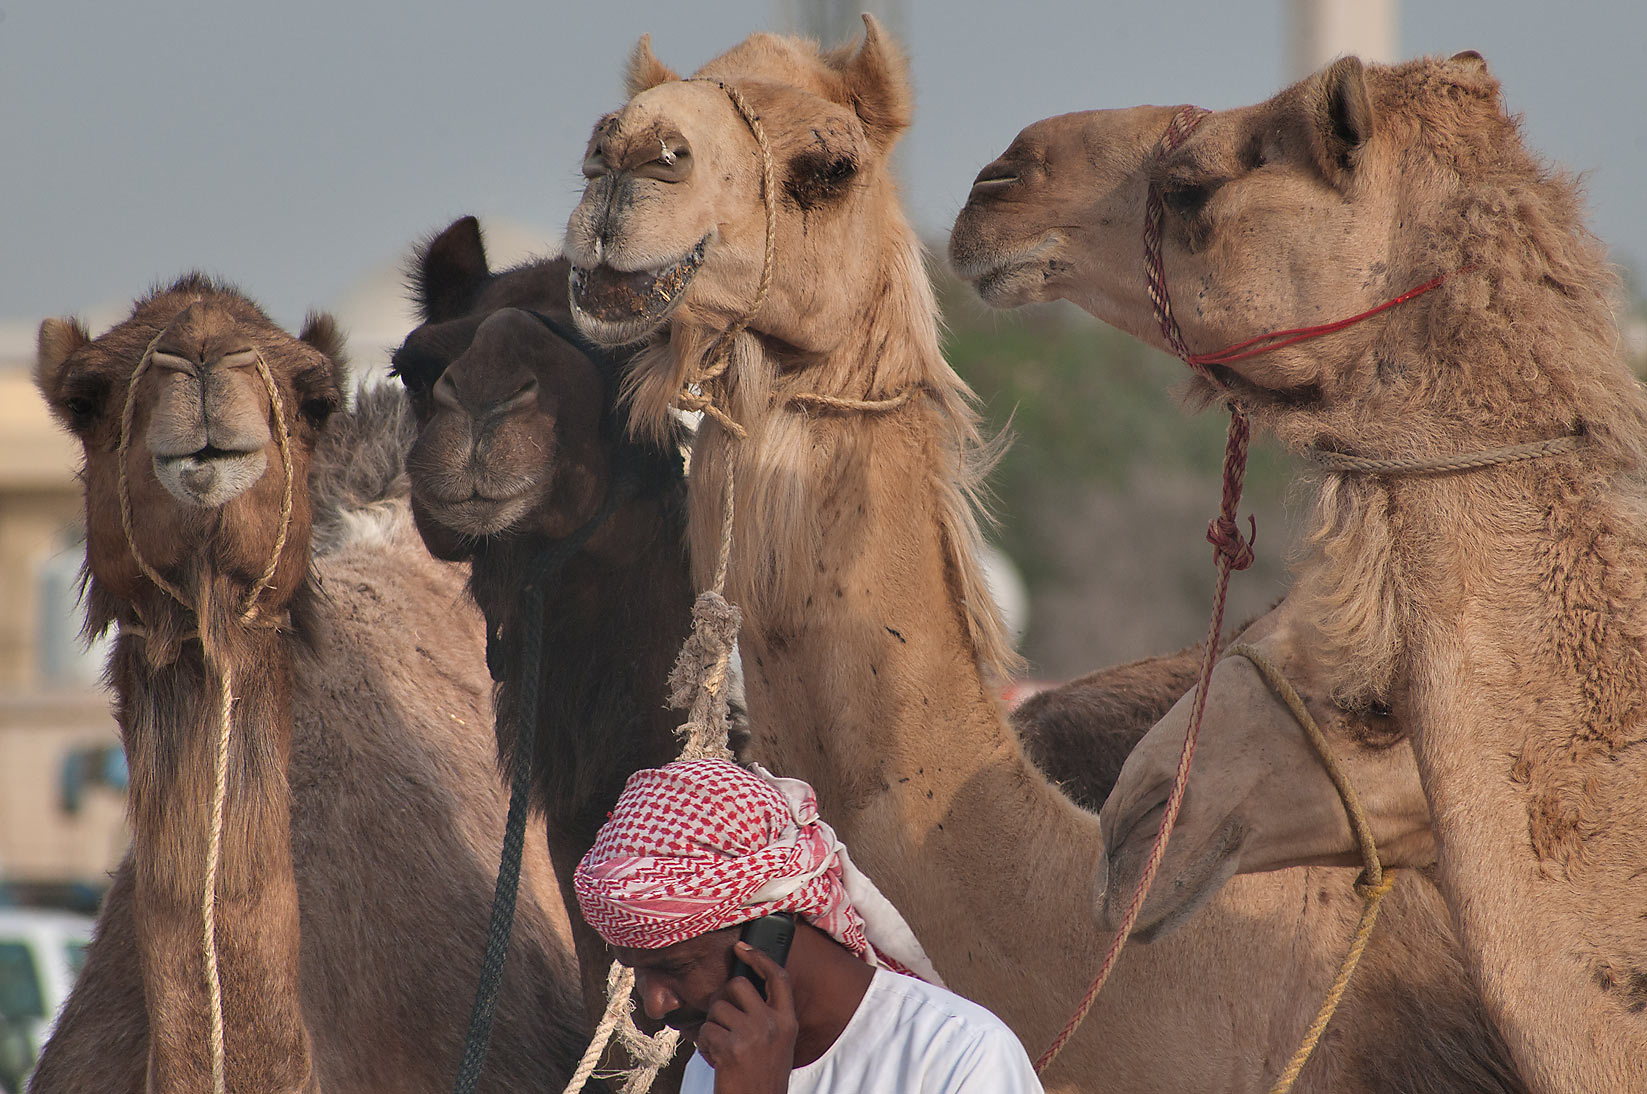 A person with cell phone leading five camels near...Wholesale Markets area. Doha, Qatar